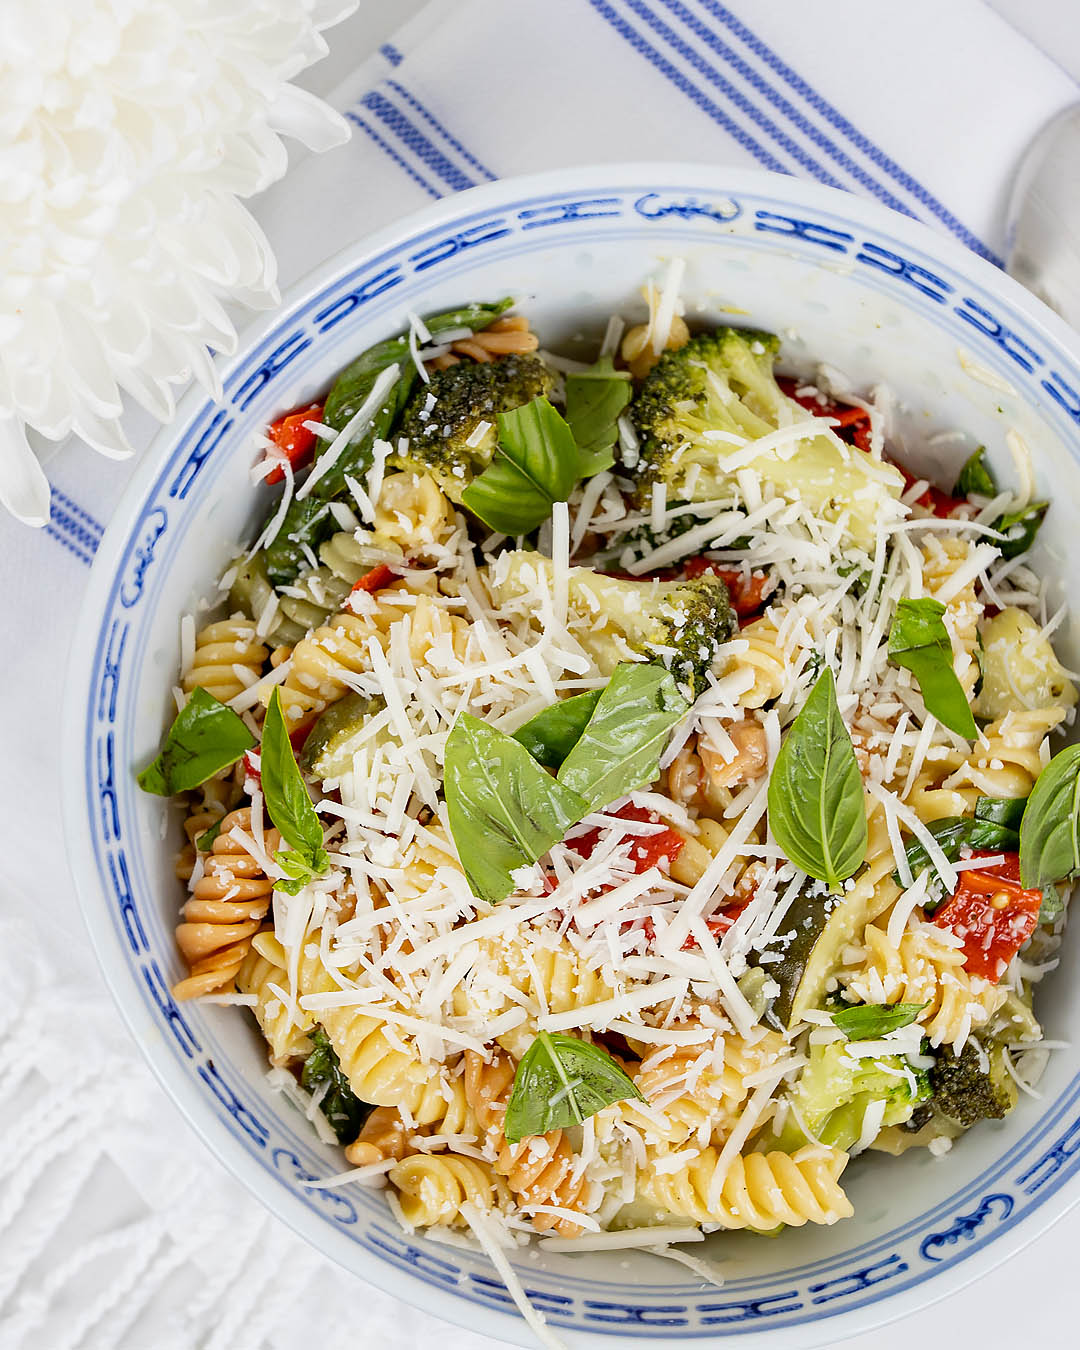 I've been making this creamy plant-based pasta over and over again this summer. Sometimes I switch the veggies up a little bit, but it never disappoints!